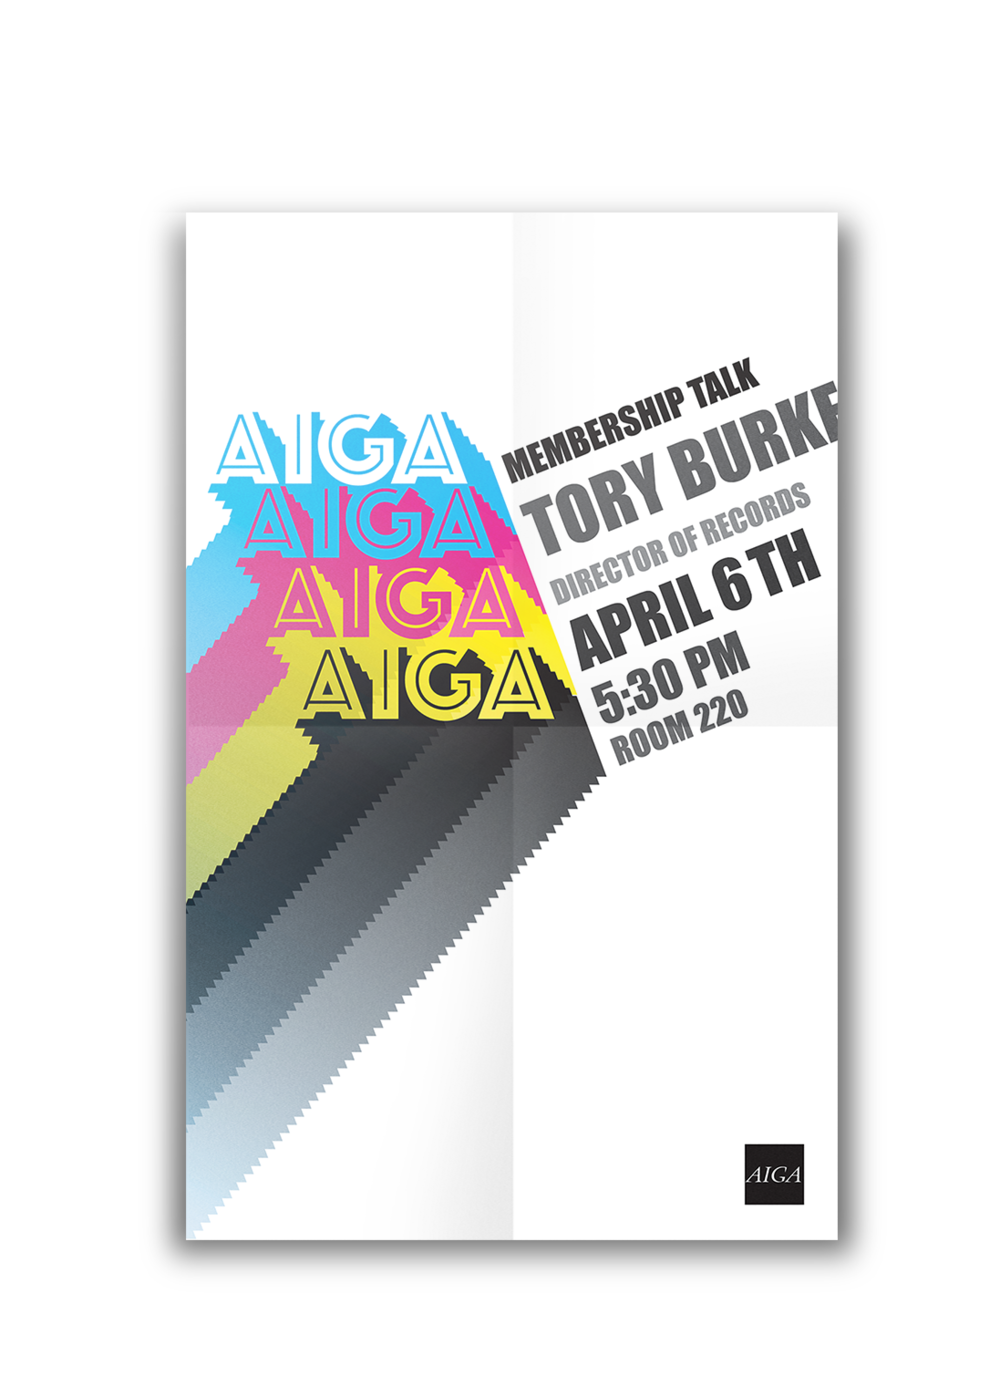 AIGA Speaker Poster - Local designer Tory Burke came to speak at UNO and this was a poster to advertise his speaking event.